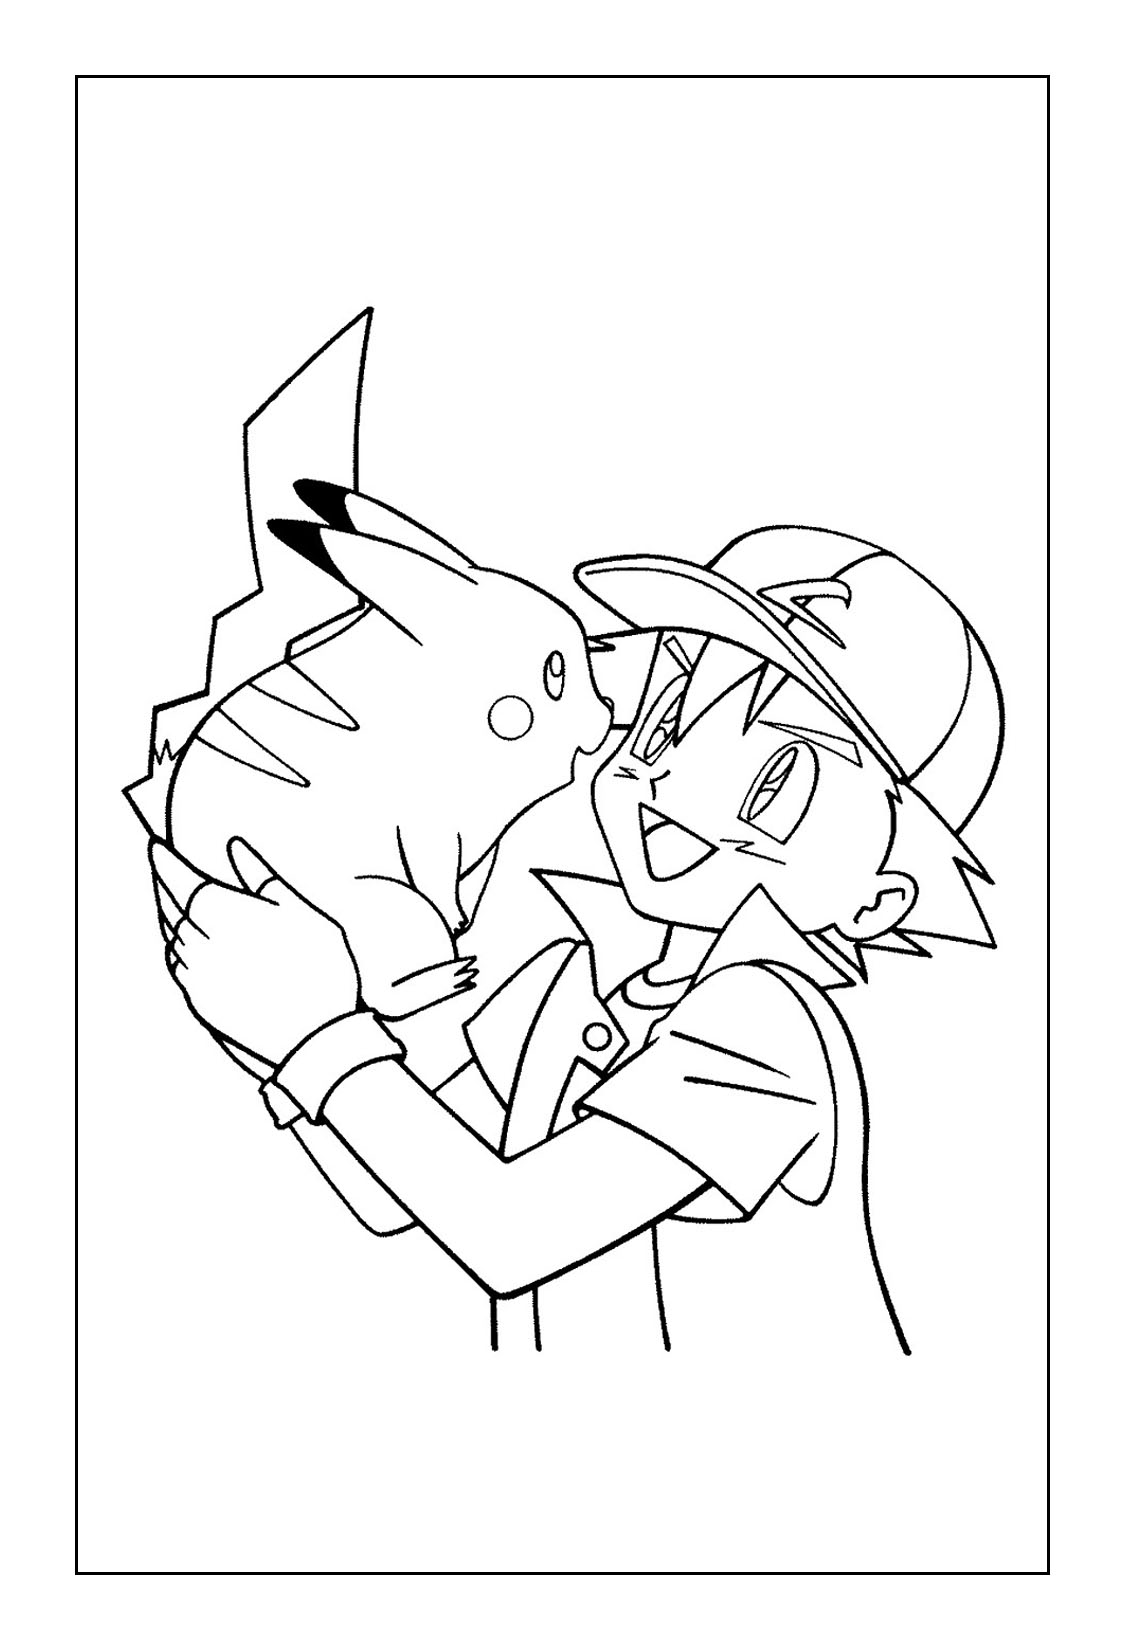 Printable Pikachu Coloring Pages - Ash and Pikachu